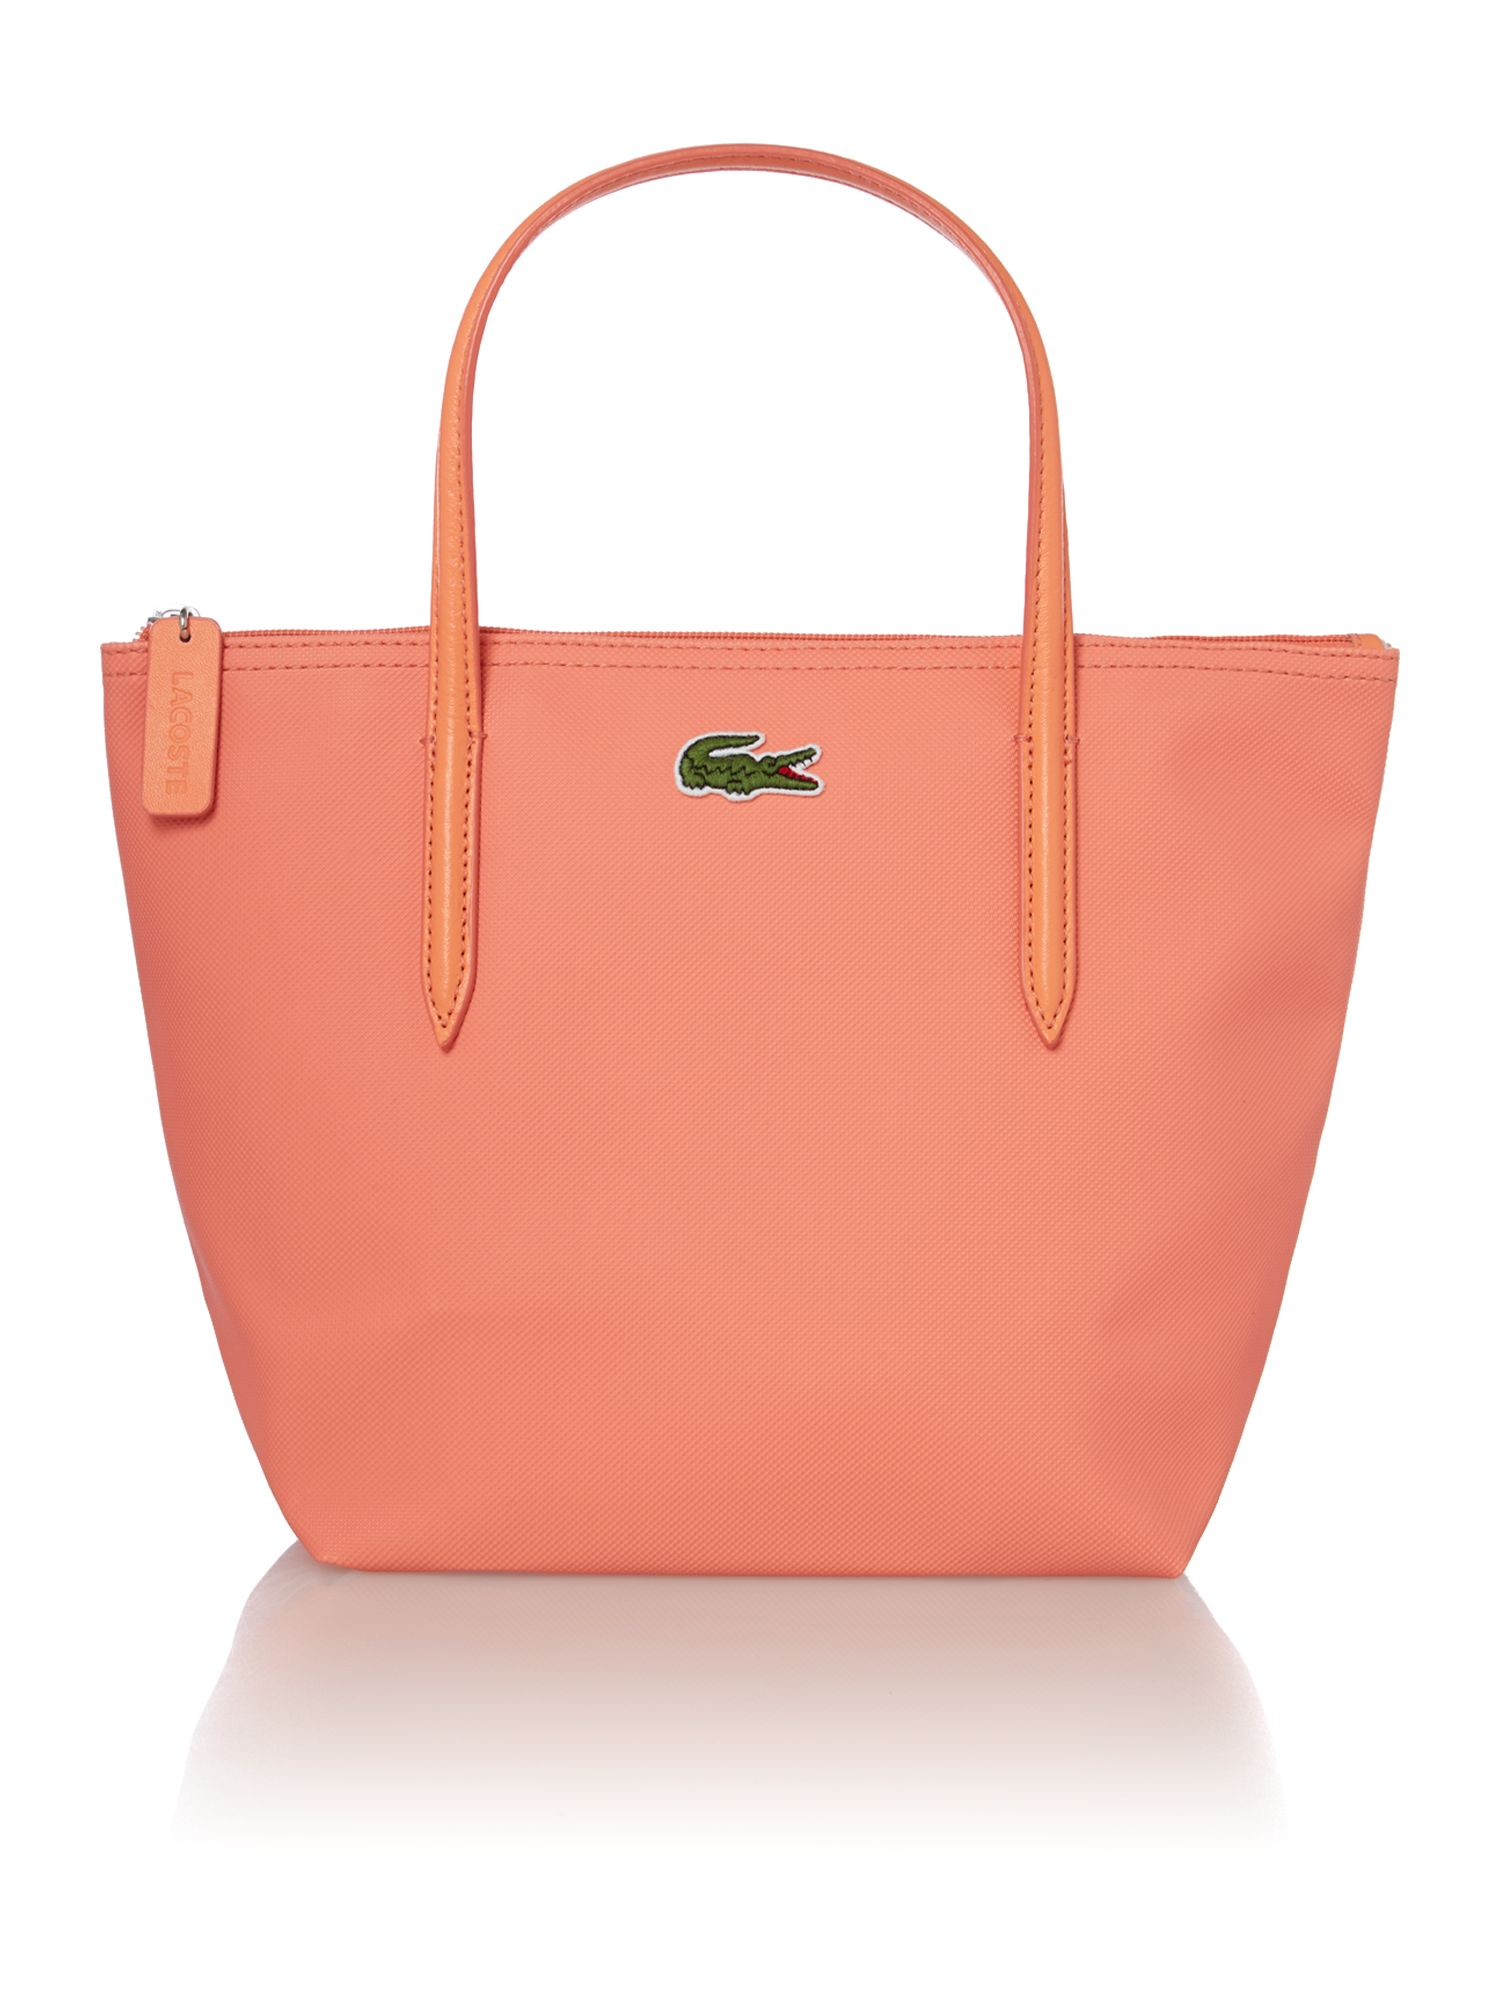 lacoste bags - photo #44